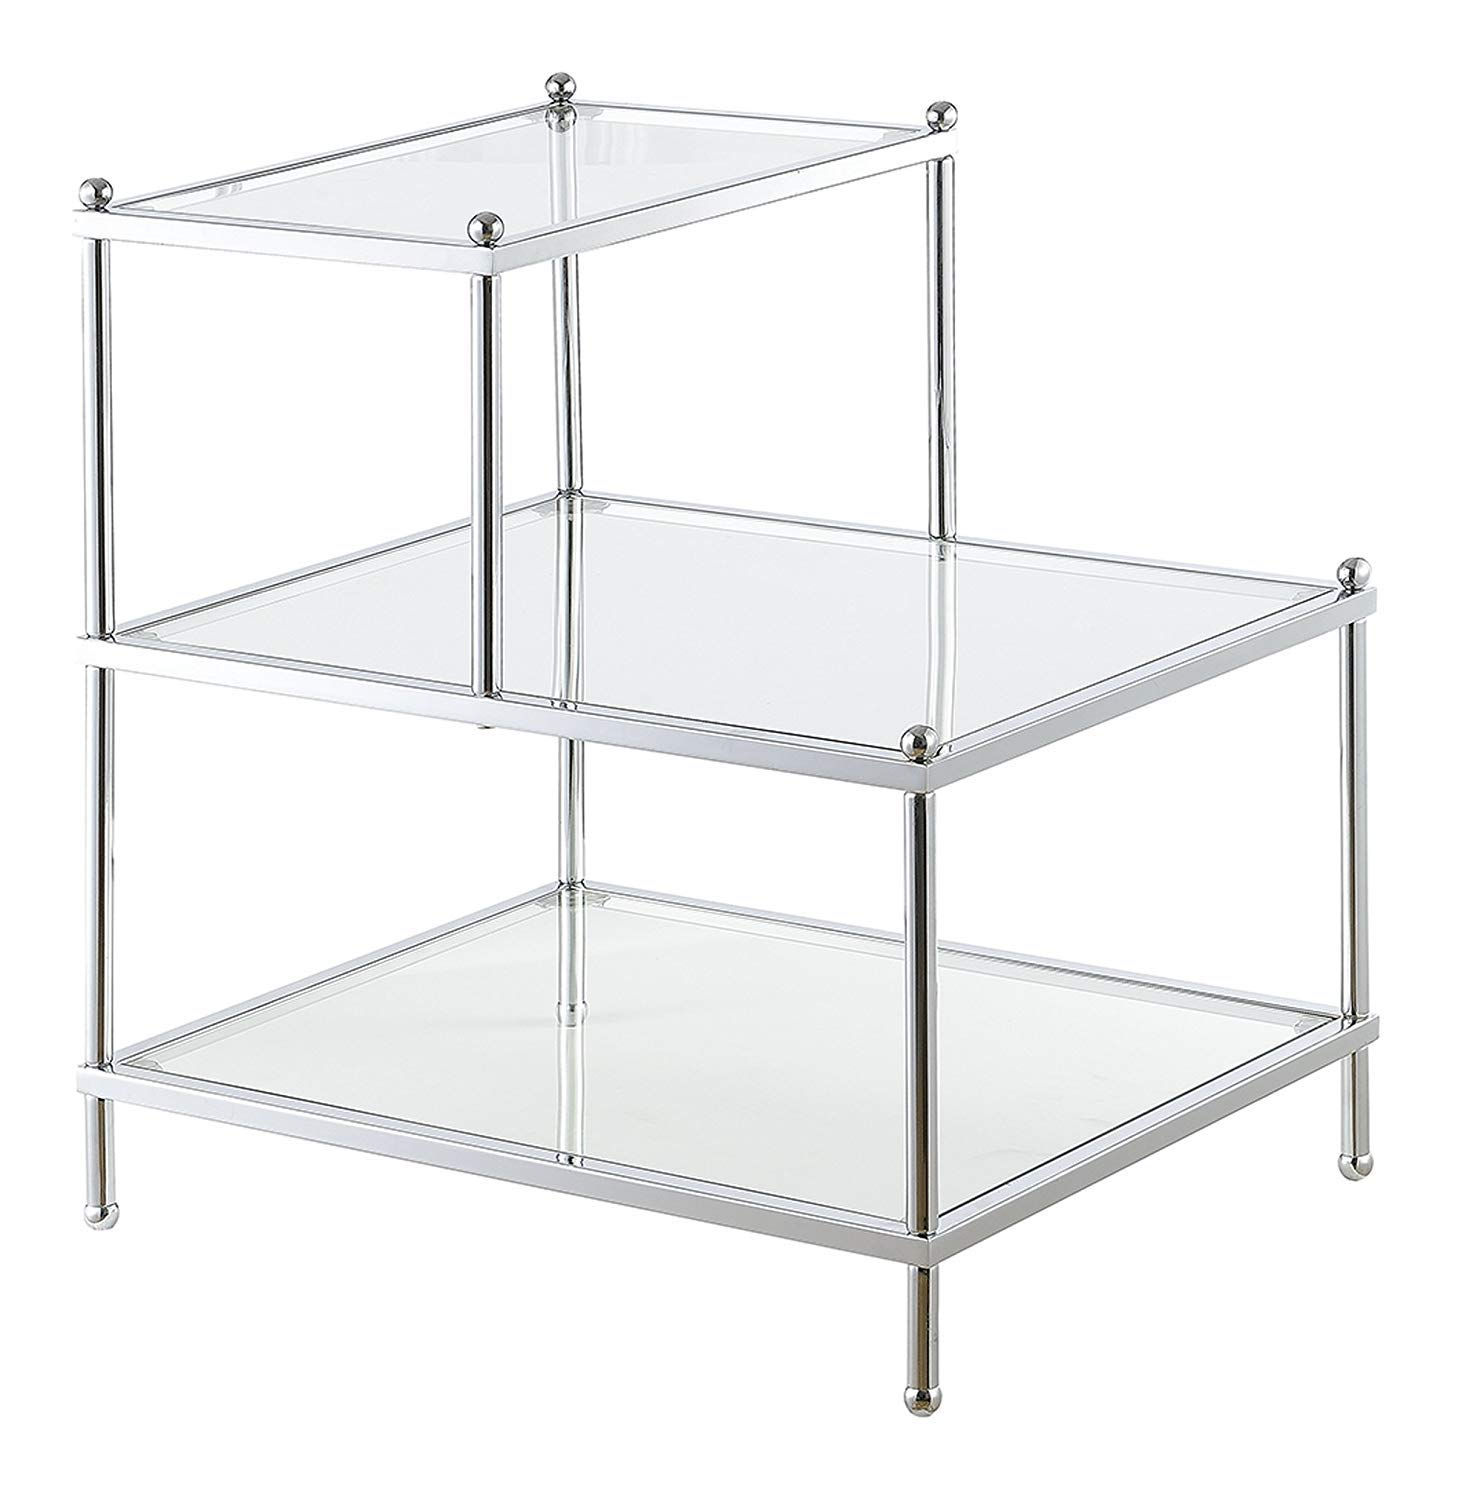 Convenience Concepts Royal Crest 3 Tier Step End Table, Clear Glass / Chrome Frame